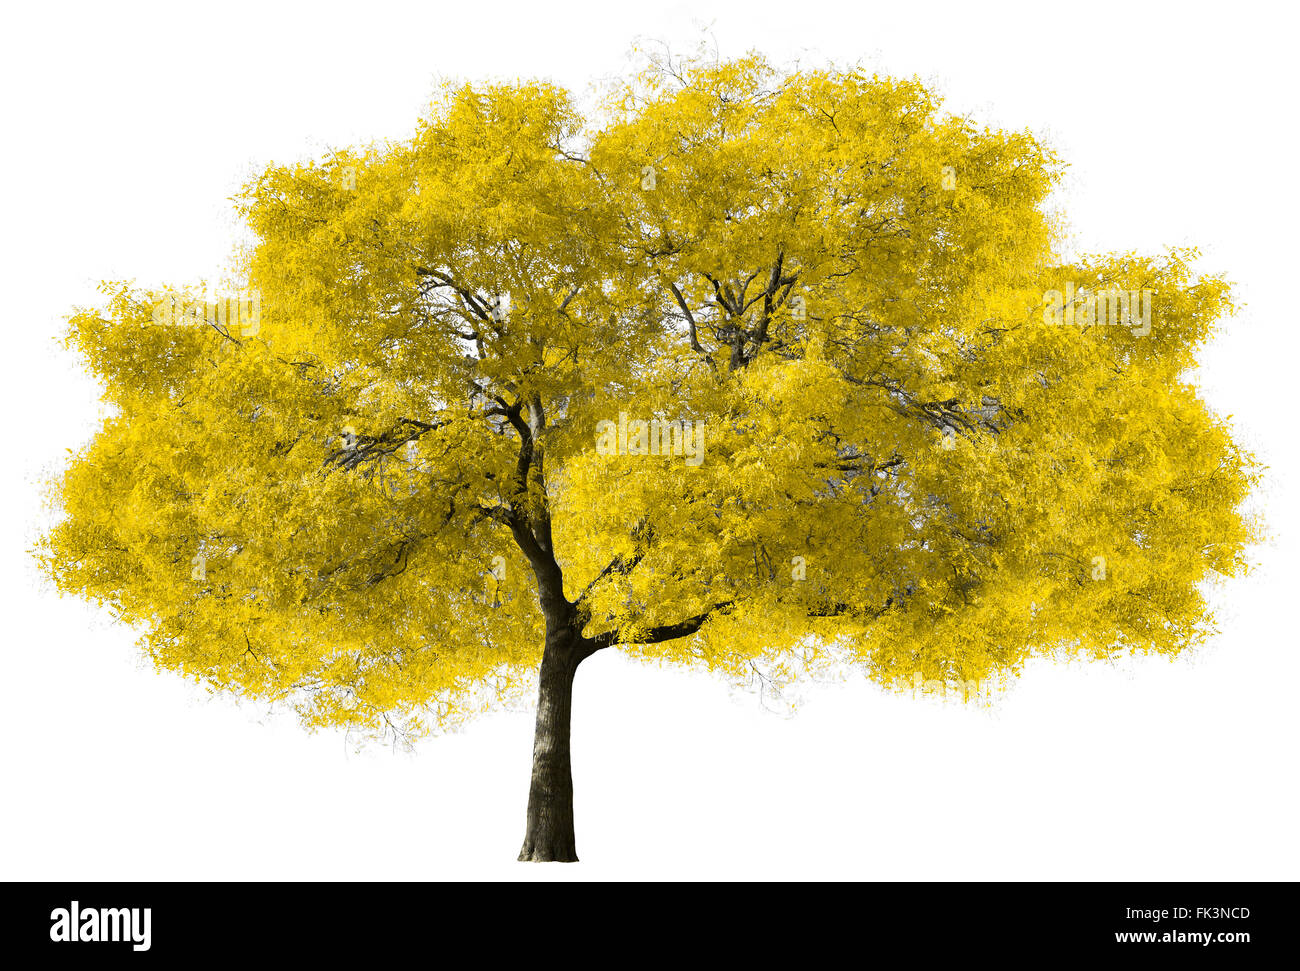 Big yellow tree isolated on white background stock photo 97812973 big yellow tree isolated on white background mightylinksfo